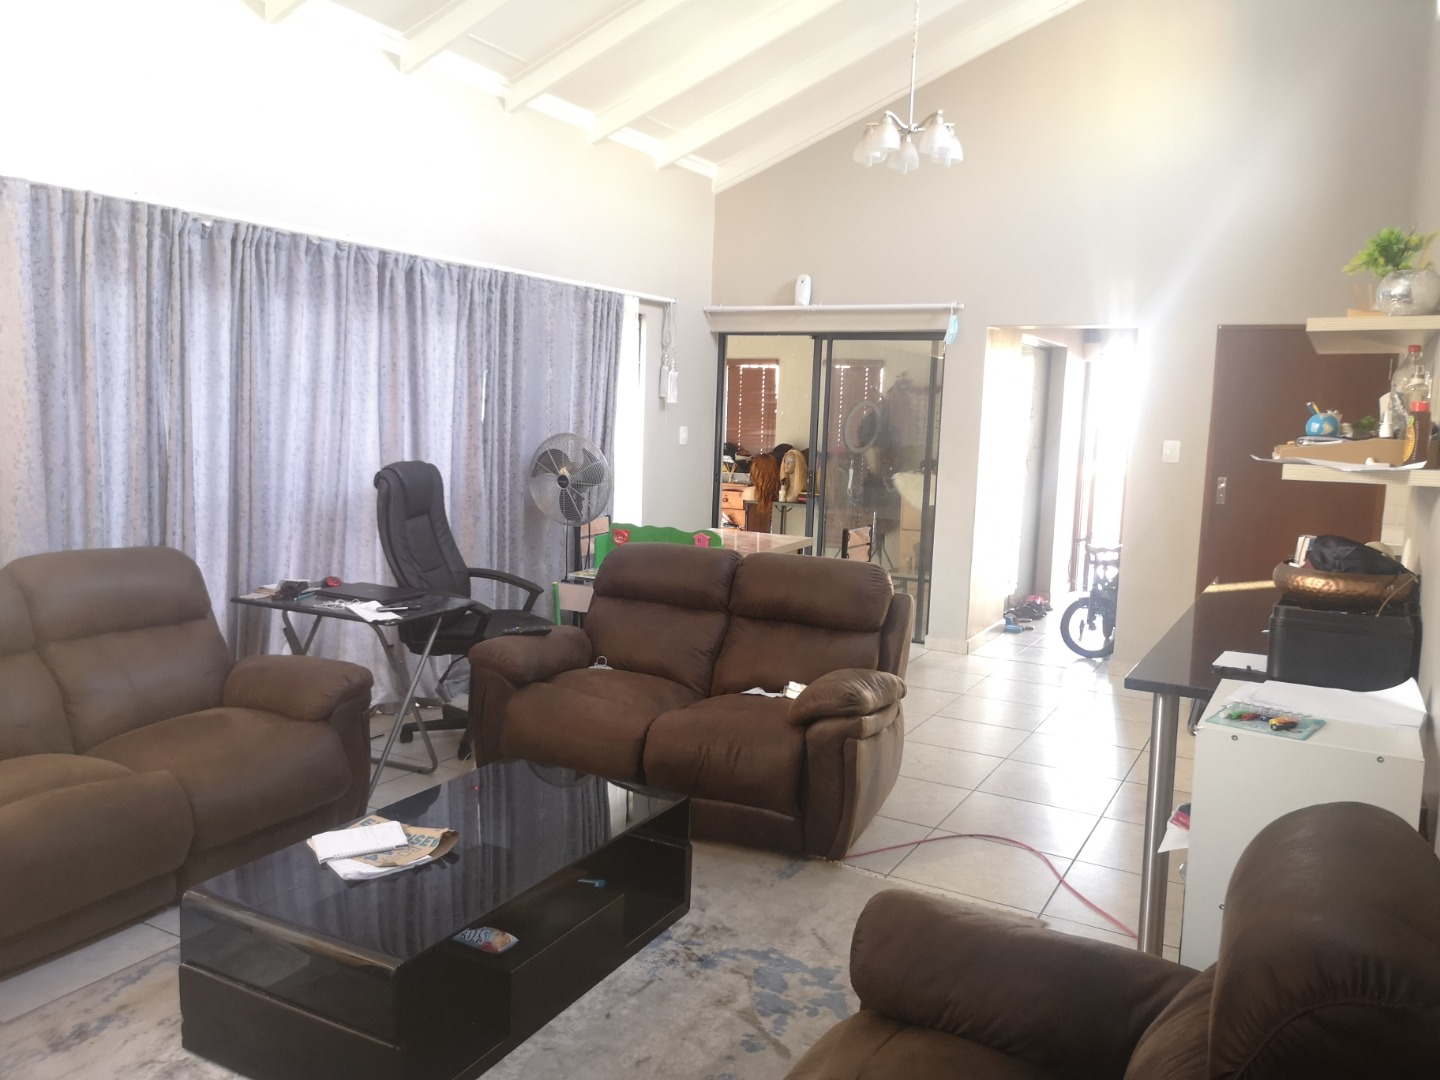 4 Bedroom House For Sale in Blue Hills